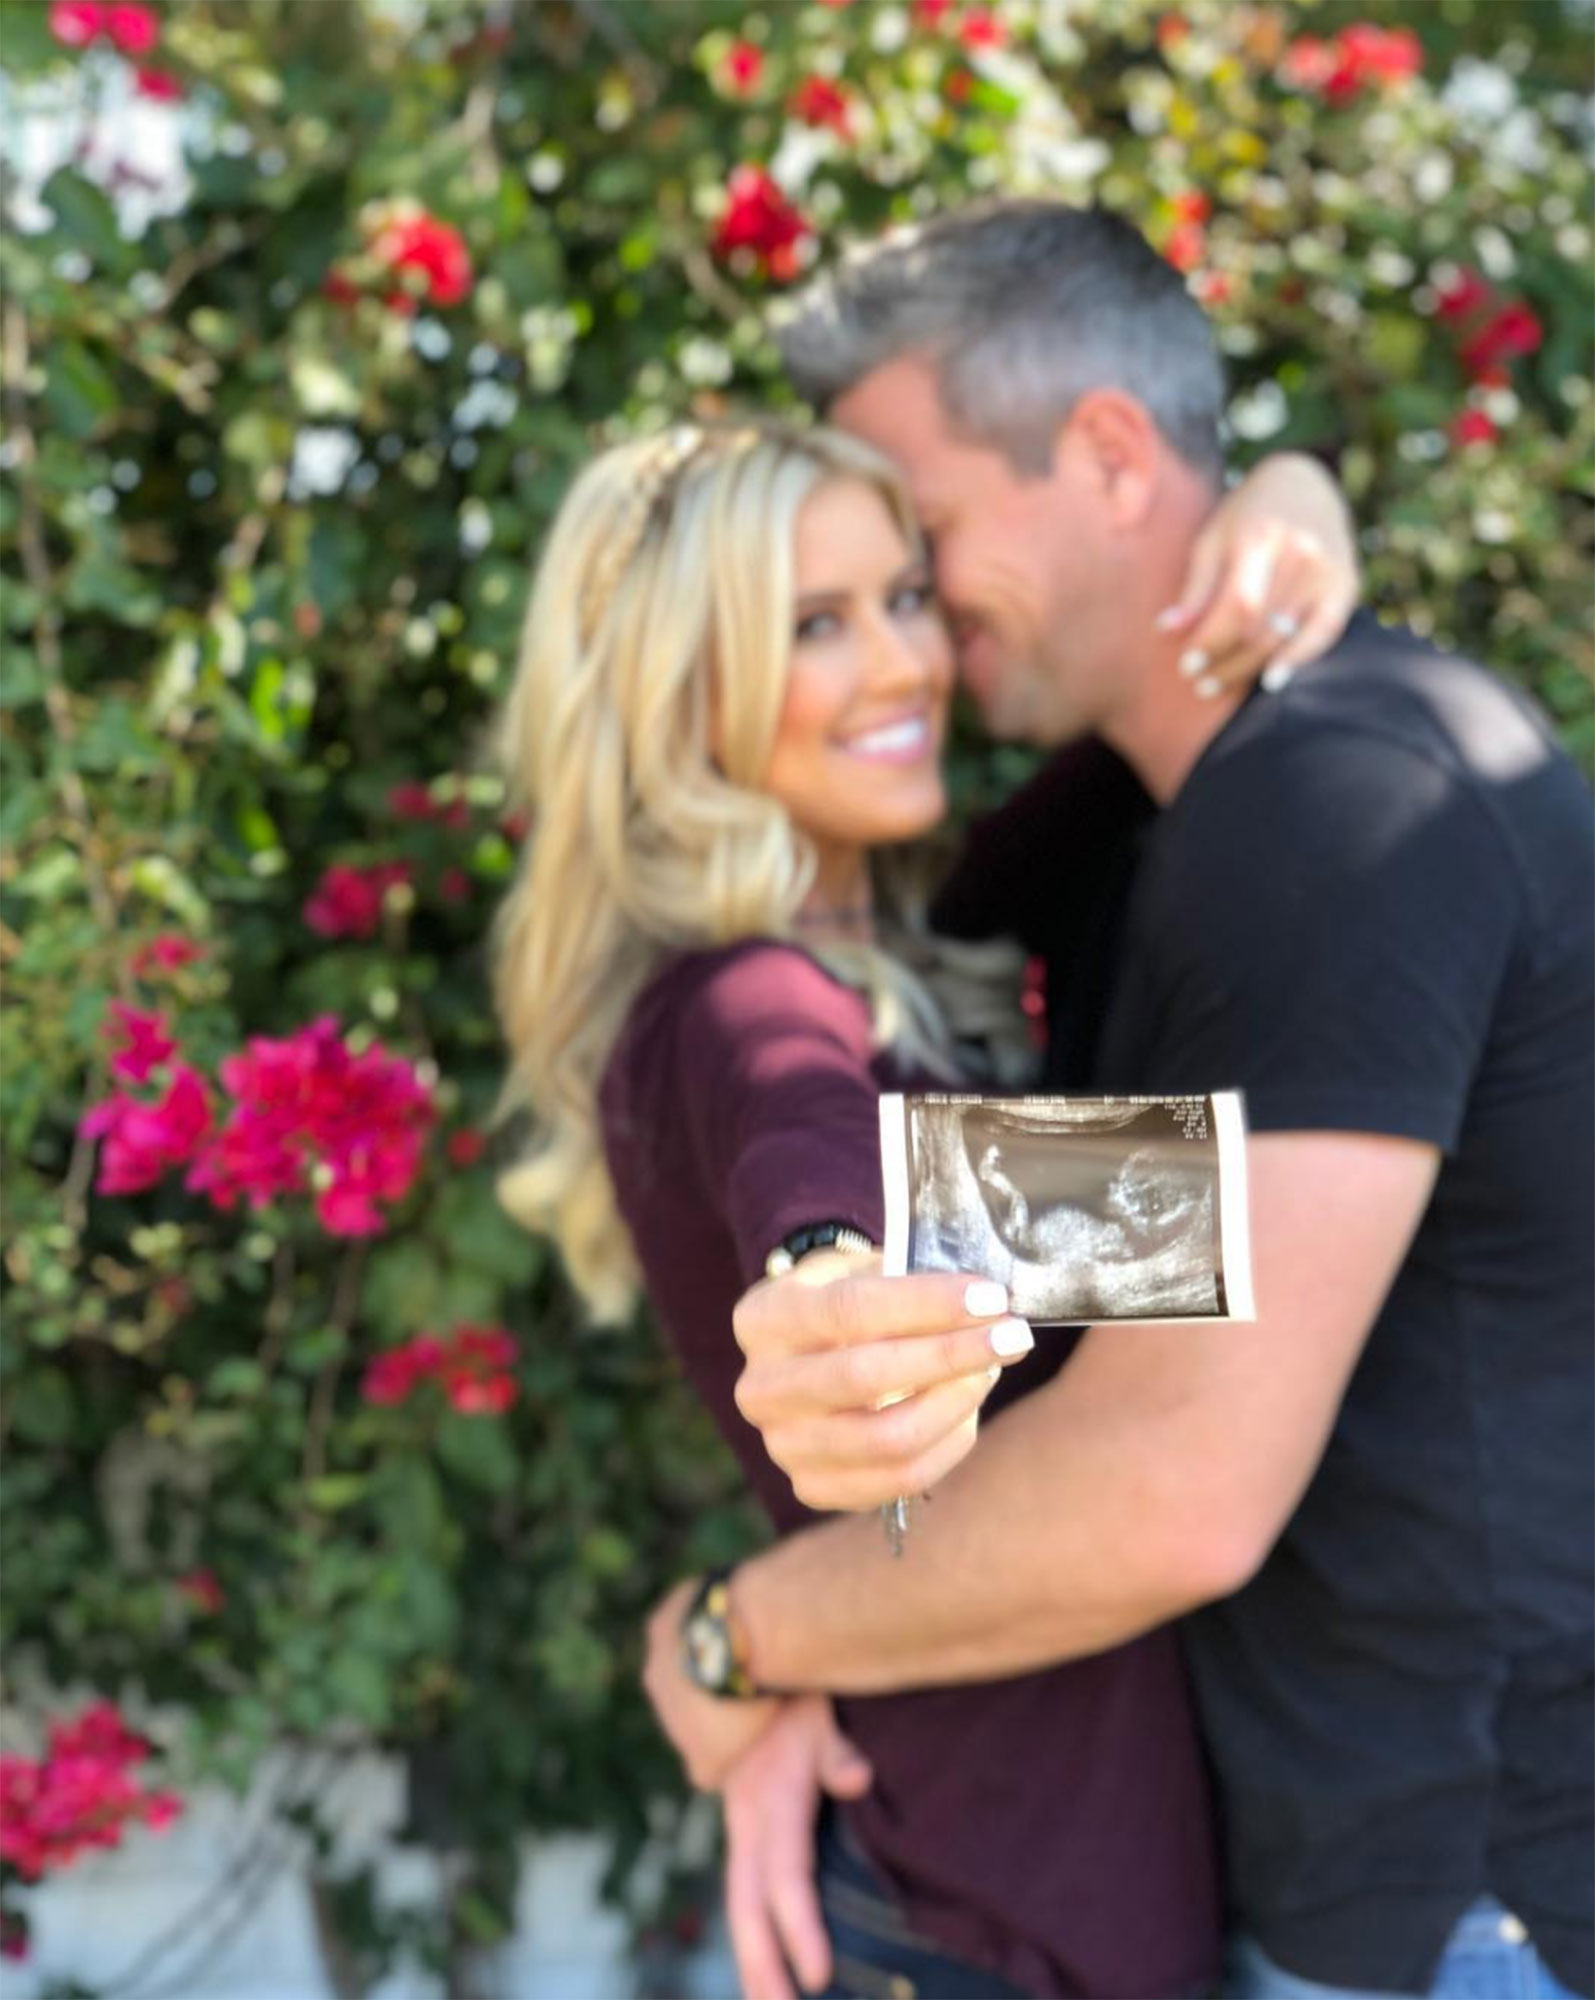 Cutest Celebrity Baby Announcements Christina and Ant Anstead - Christina and Ant Anstead